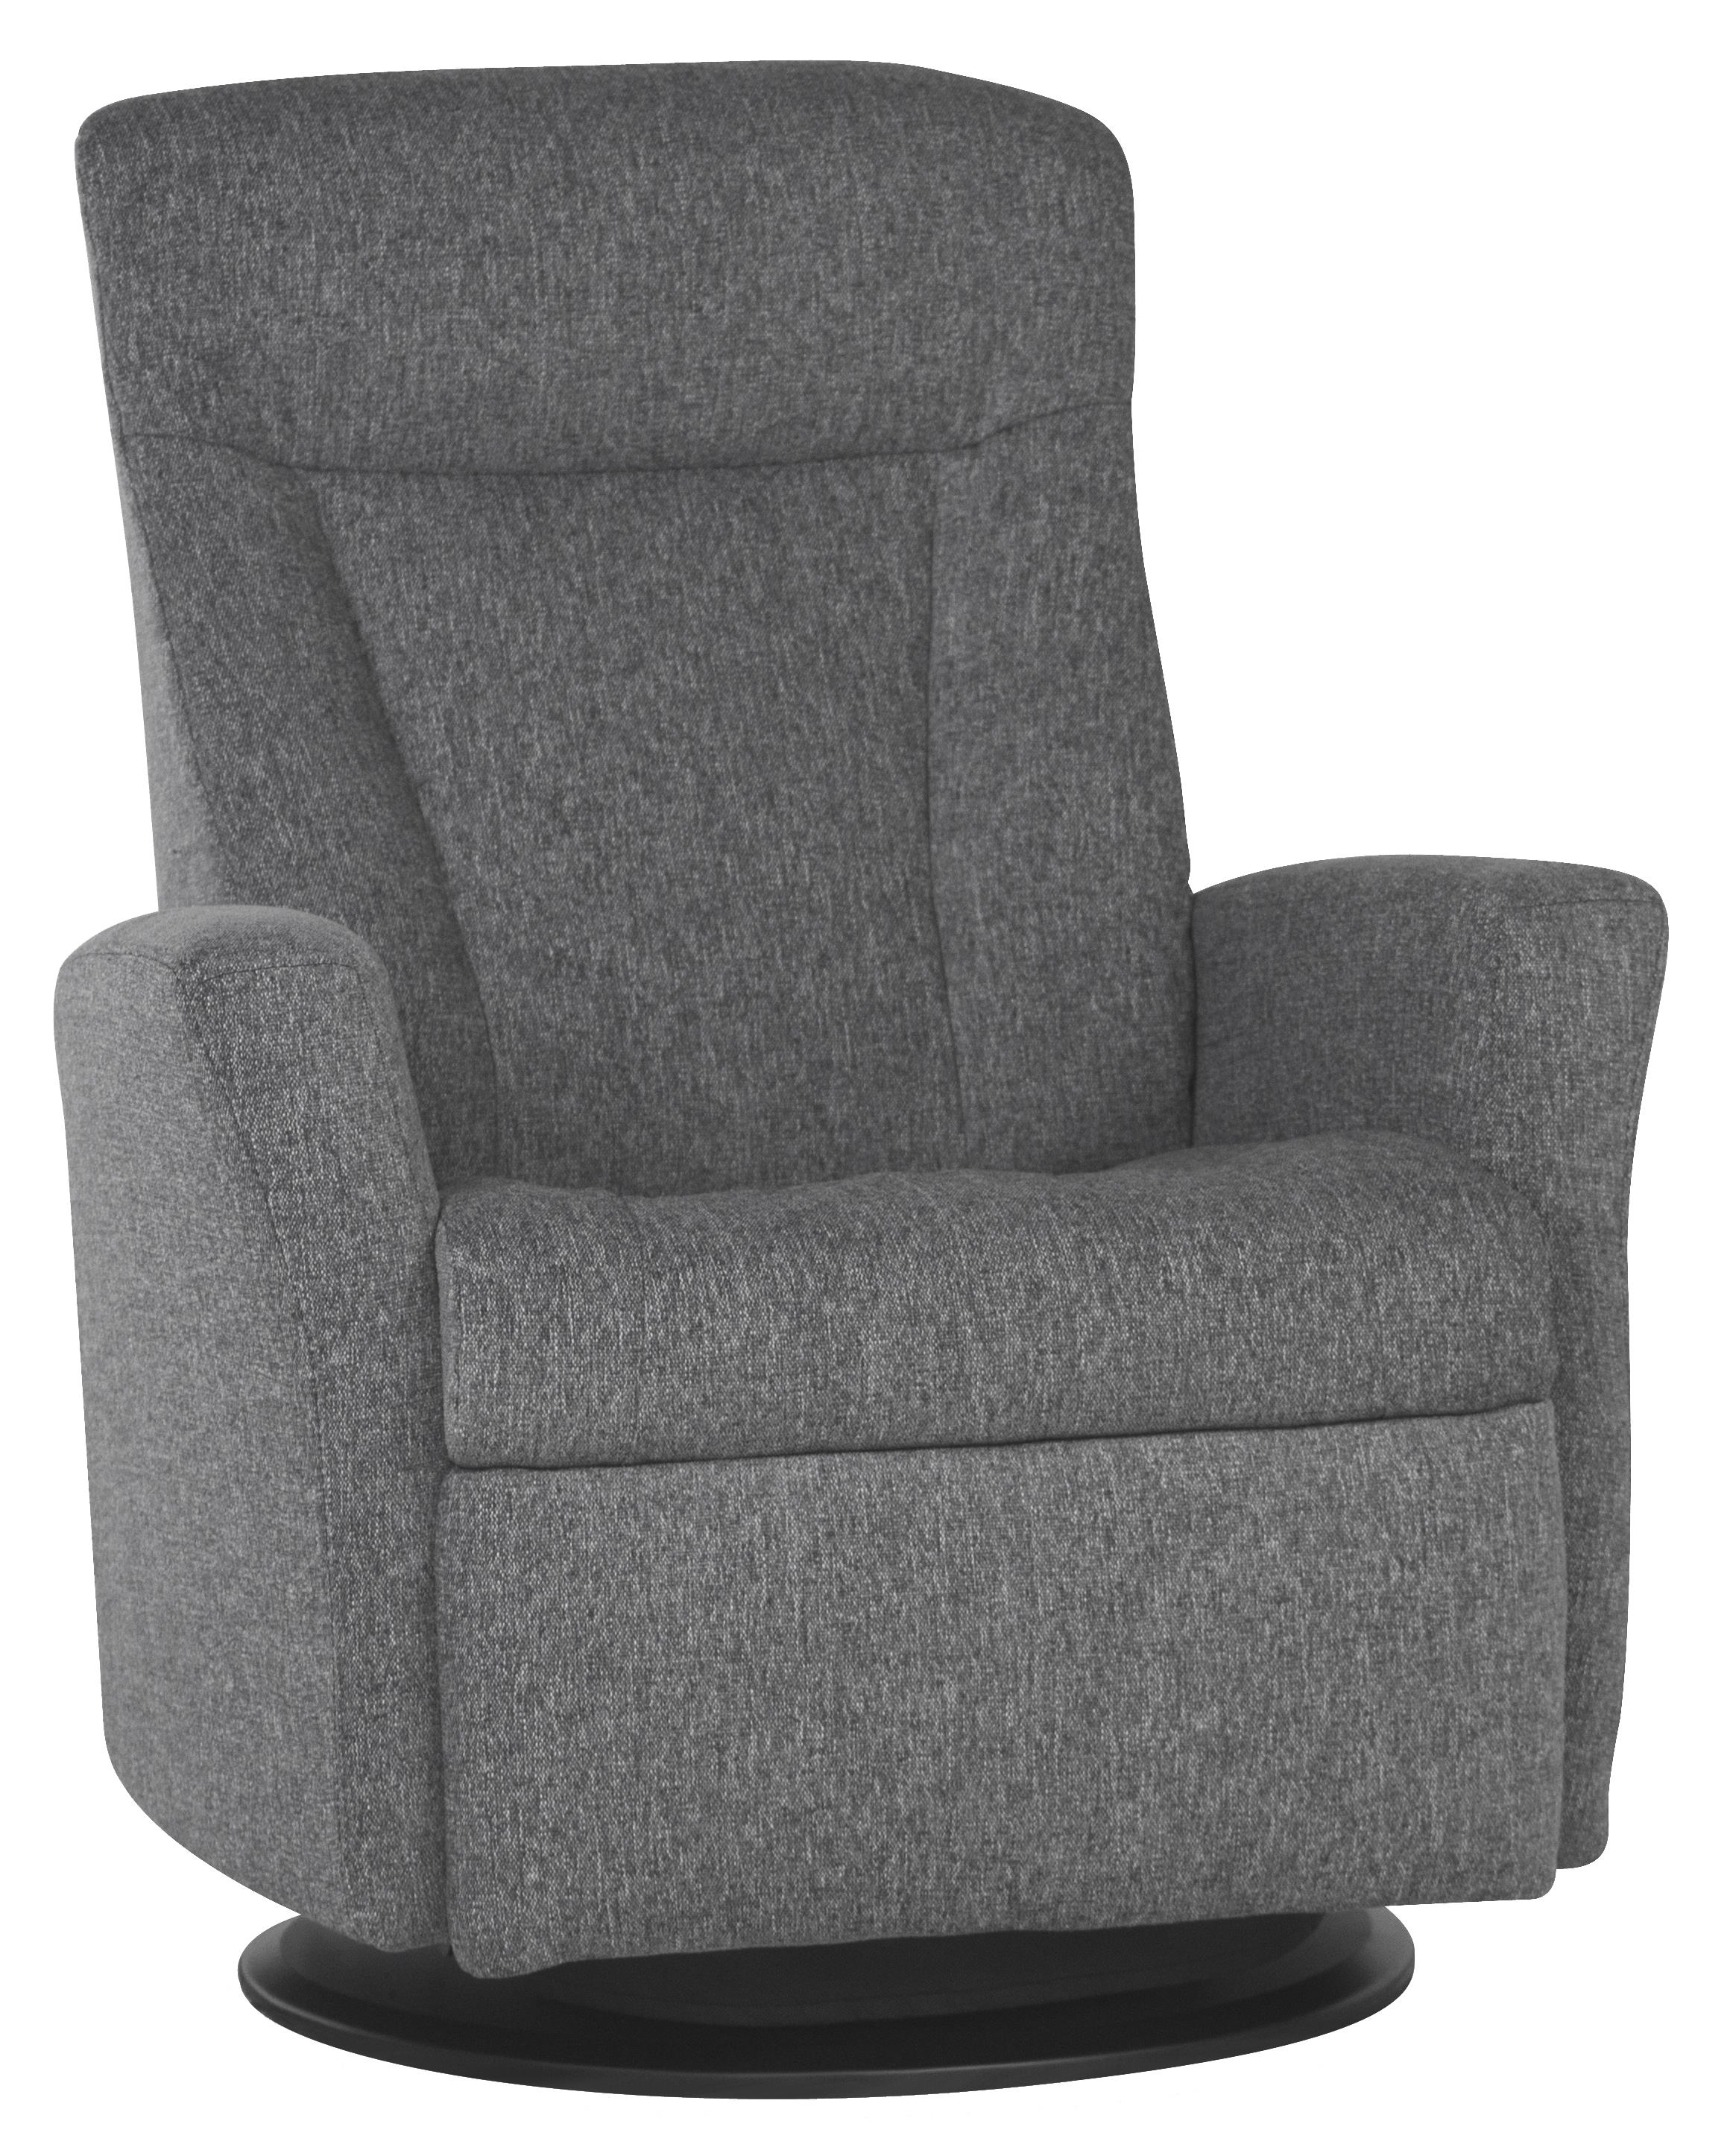 Prince Prince Relaxer Recliner by IMG Norway at Sprintz Furniture